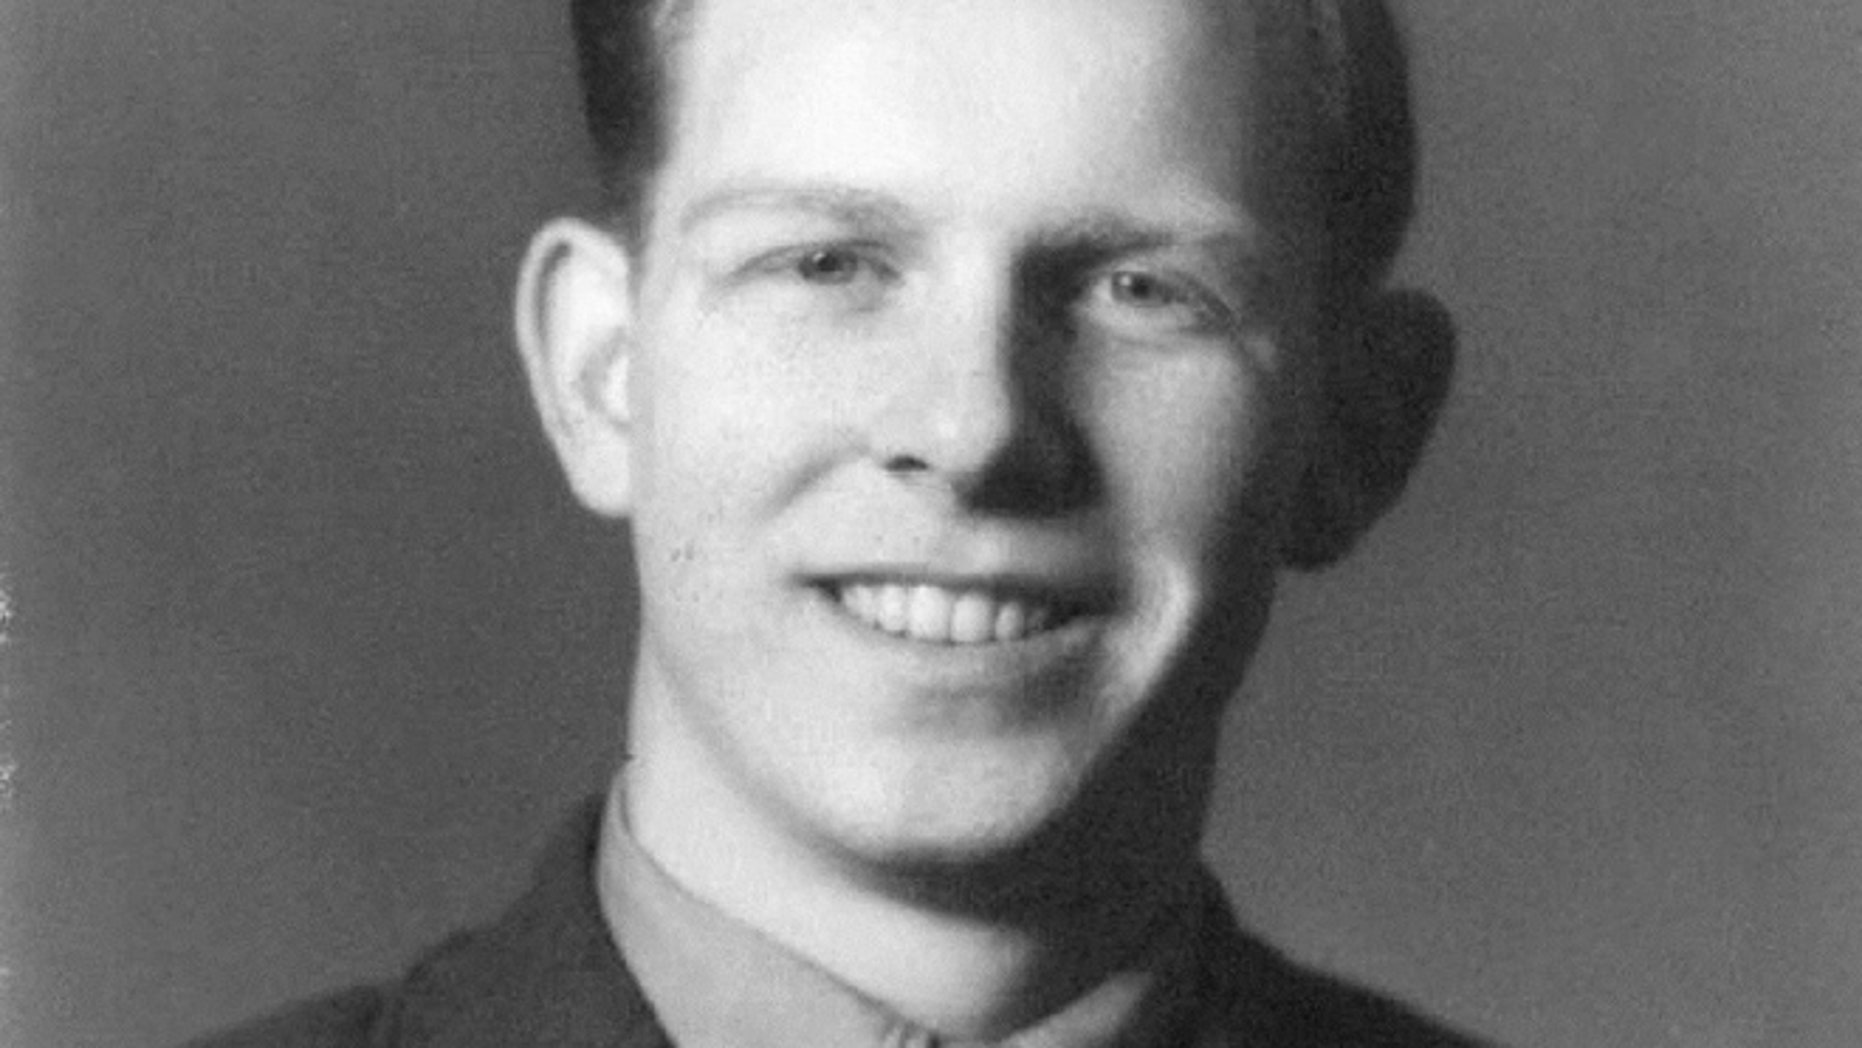 This undated photo shows Pfc James B. Johnson in his U.S. Marine Corps uniform. The Pentagon's Defense POW/MIA Accounting Agency announced that Johnson's remains, unaccounted for since World War II, have been identified and are being returned to his family for burial with full military honors. Pfc Johnson, 19, of Poughkeepsie, NY, died sometime on the first day of battle on the small island of Betio in the Tarawa Atoll in an attempt to secure the island from the Japanese, Nov. 20, 1943.